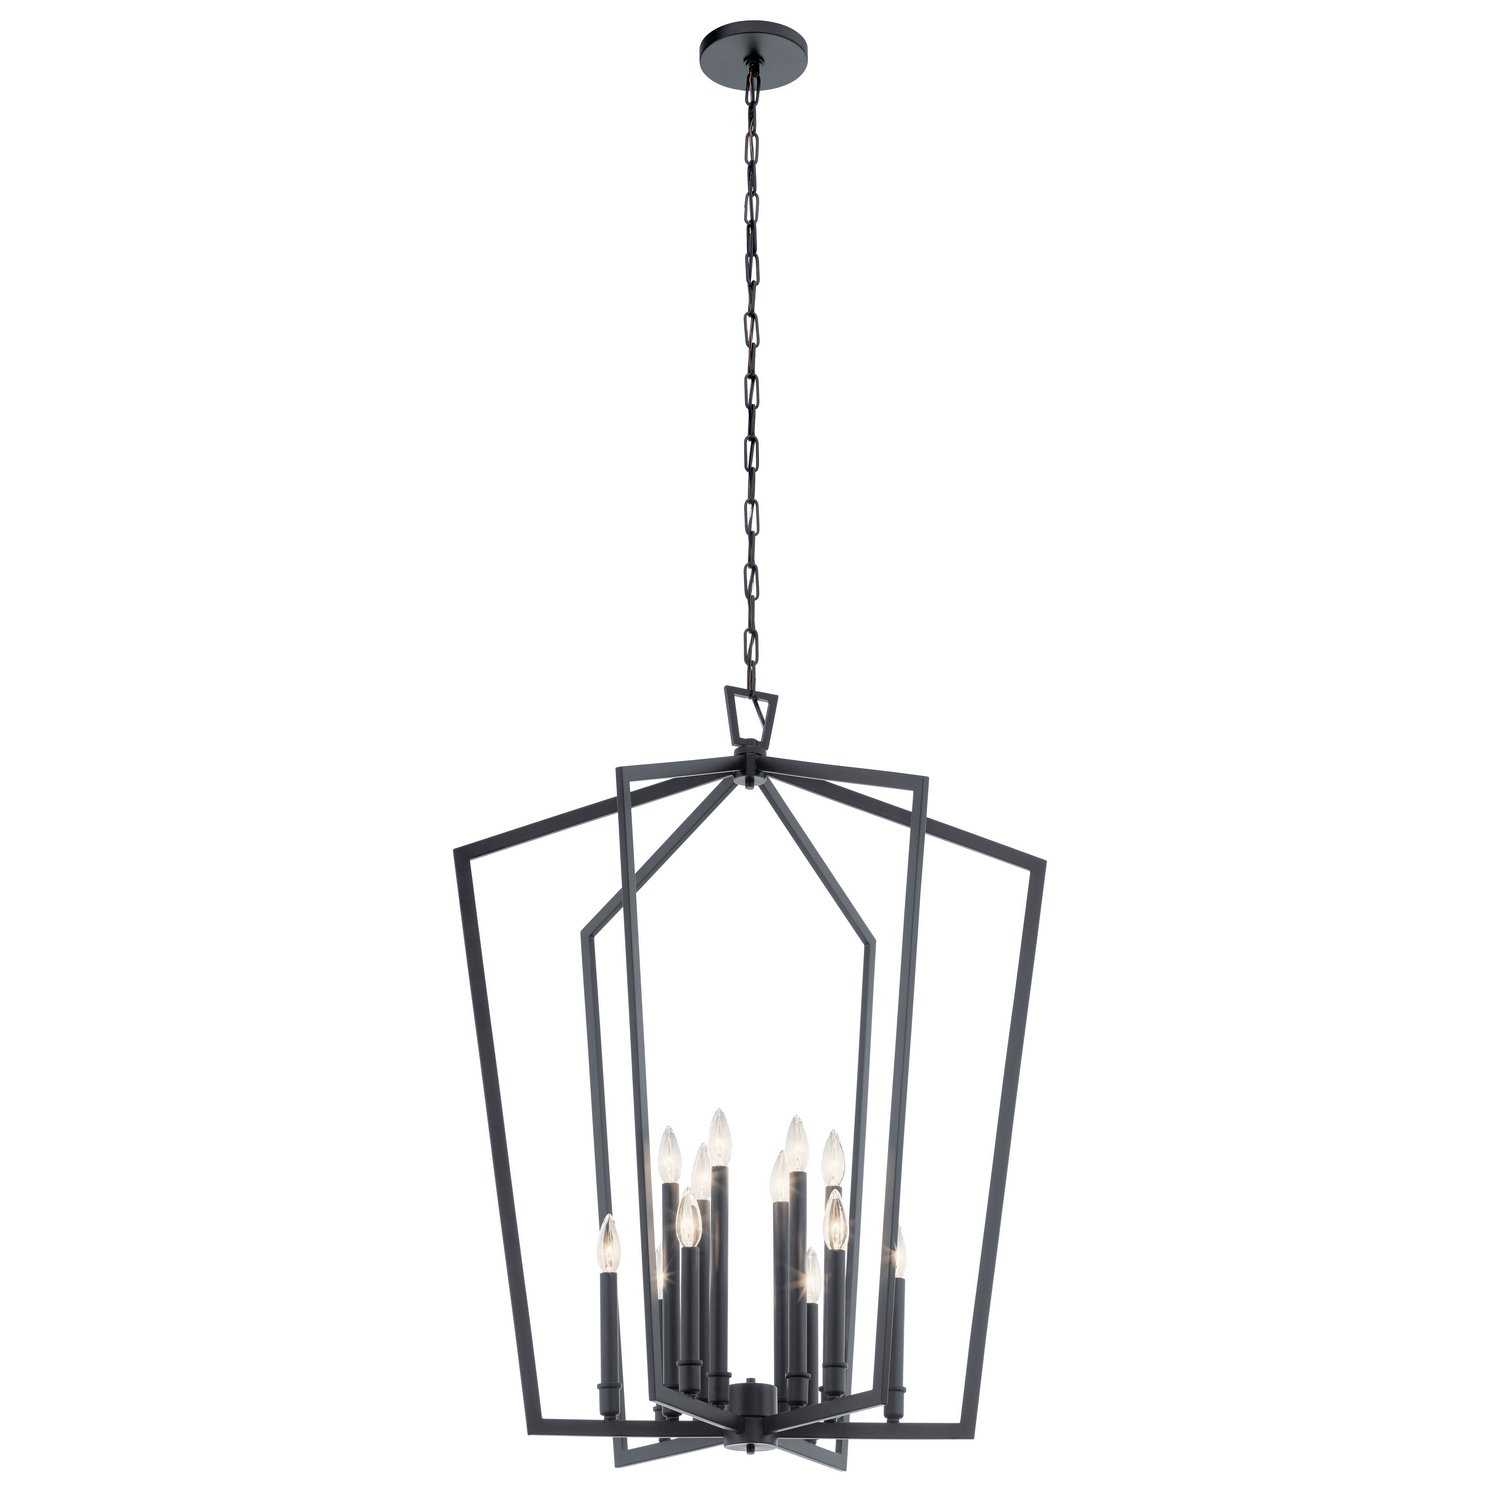 12 Light Foyer Pendant from the Abbotswell collection by Kichler 43496BK